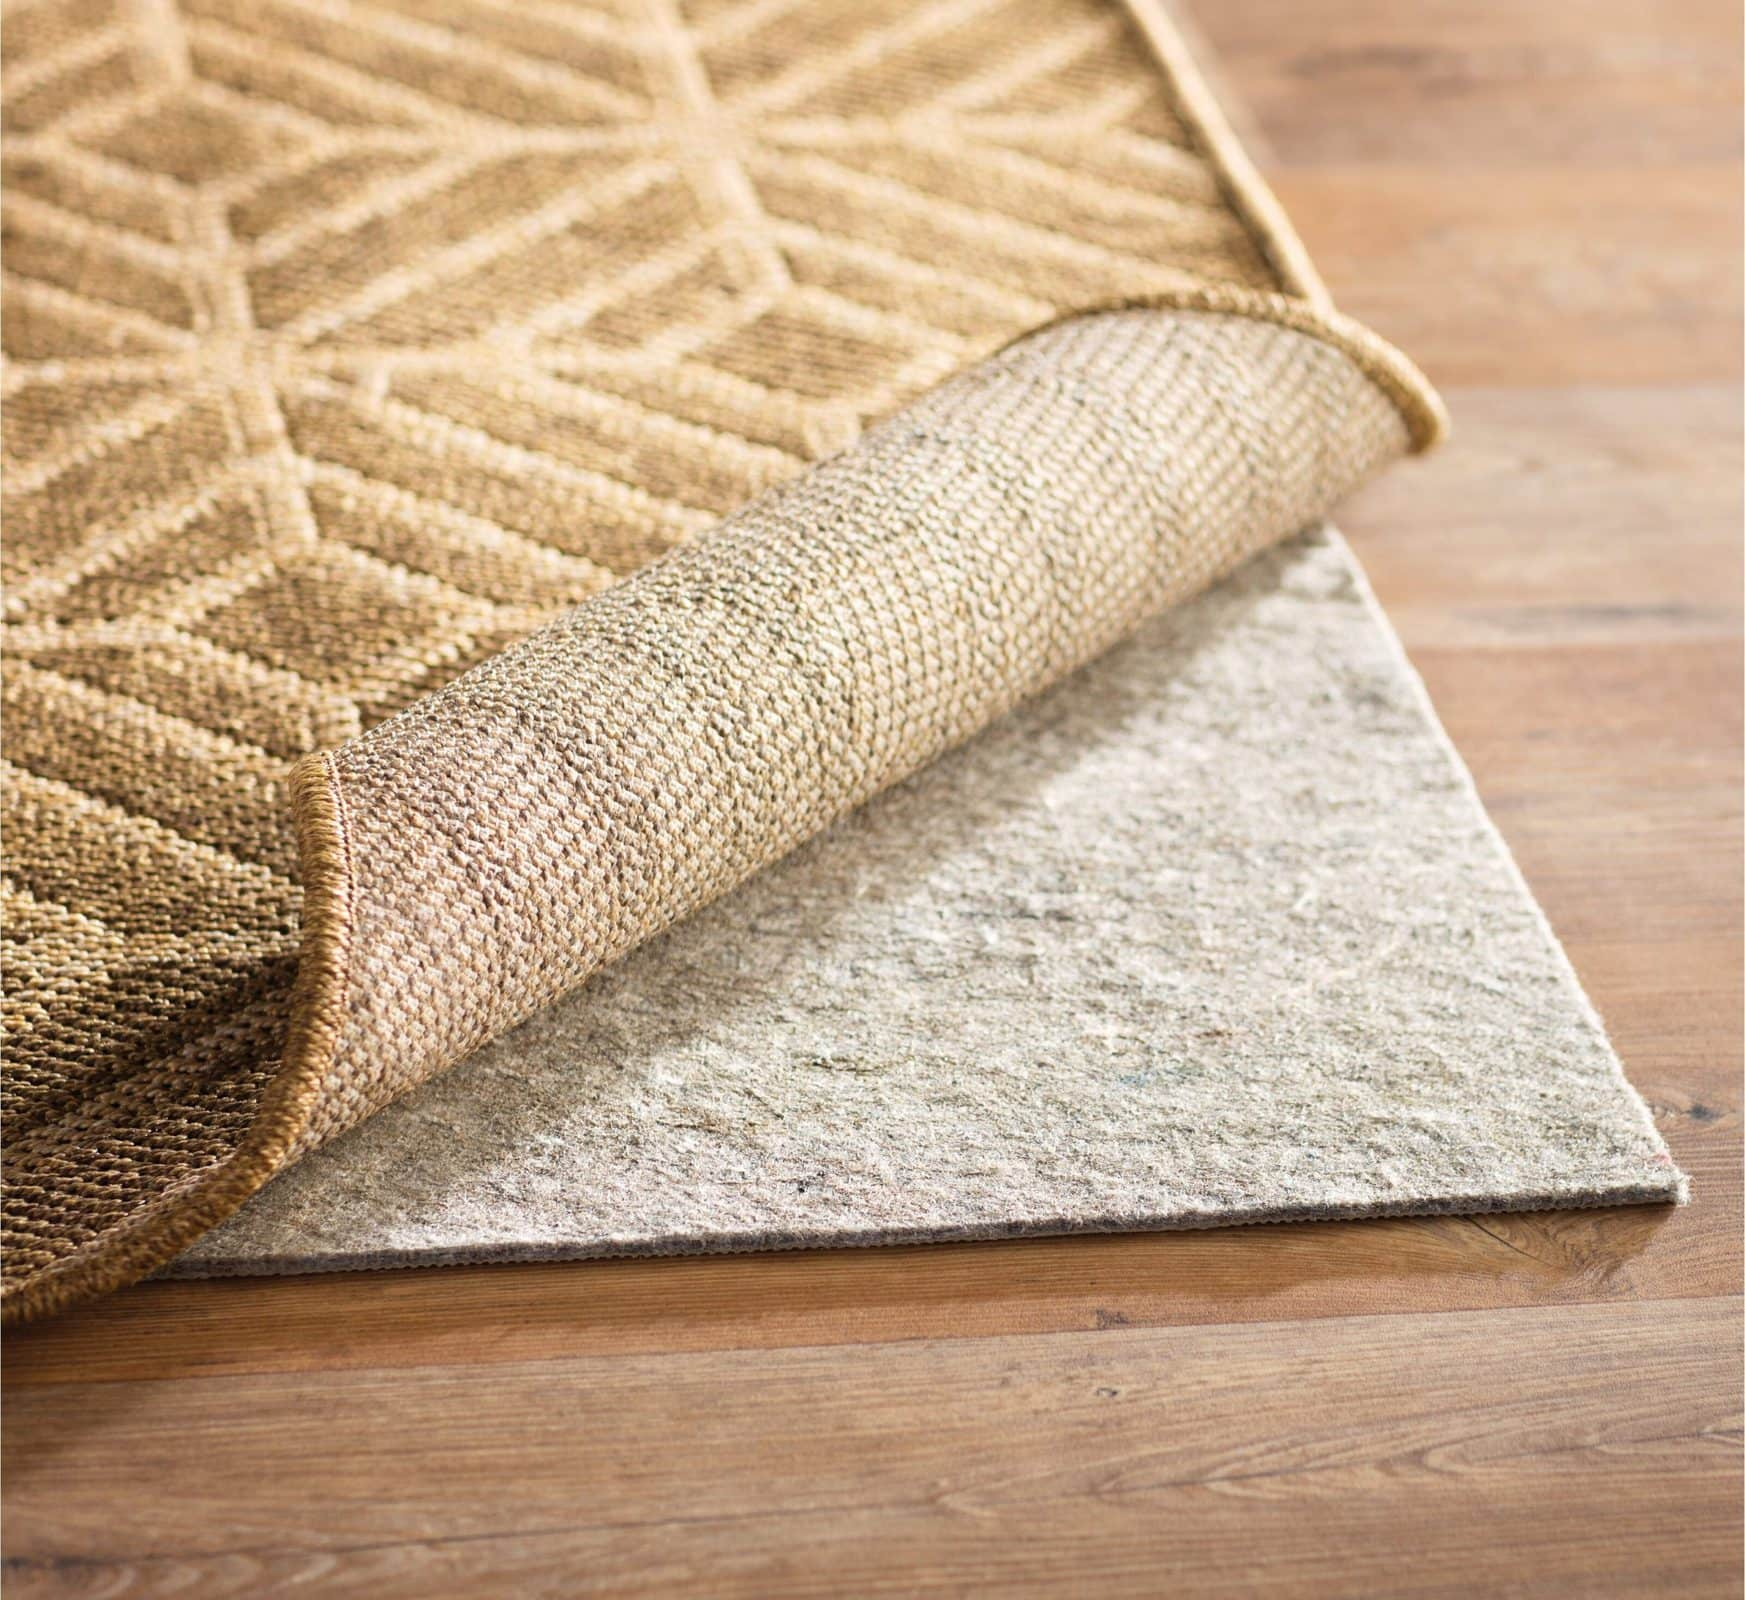 The 12 Best Rug Pads for Hardwood Floors